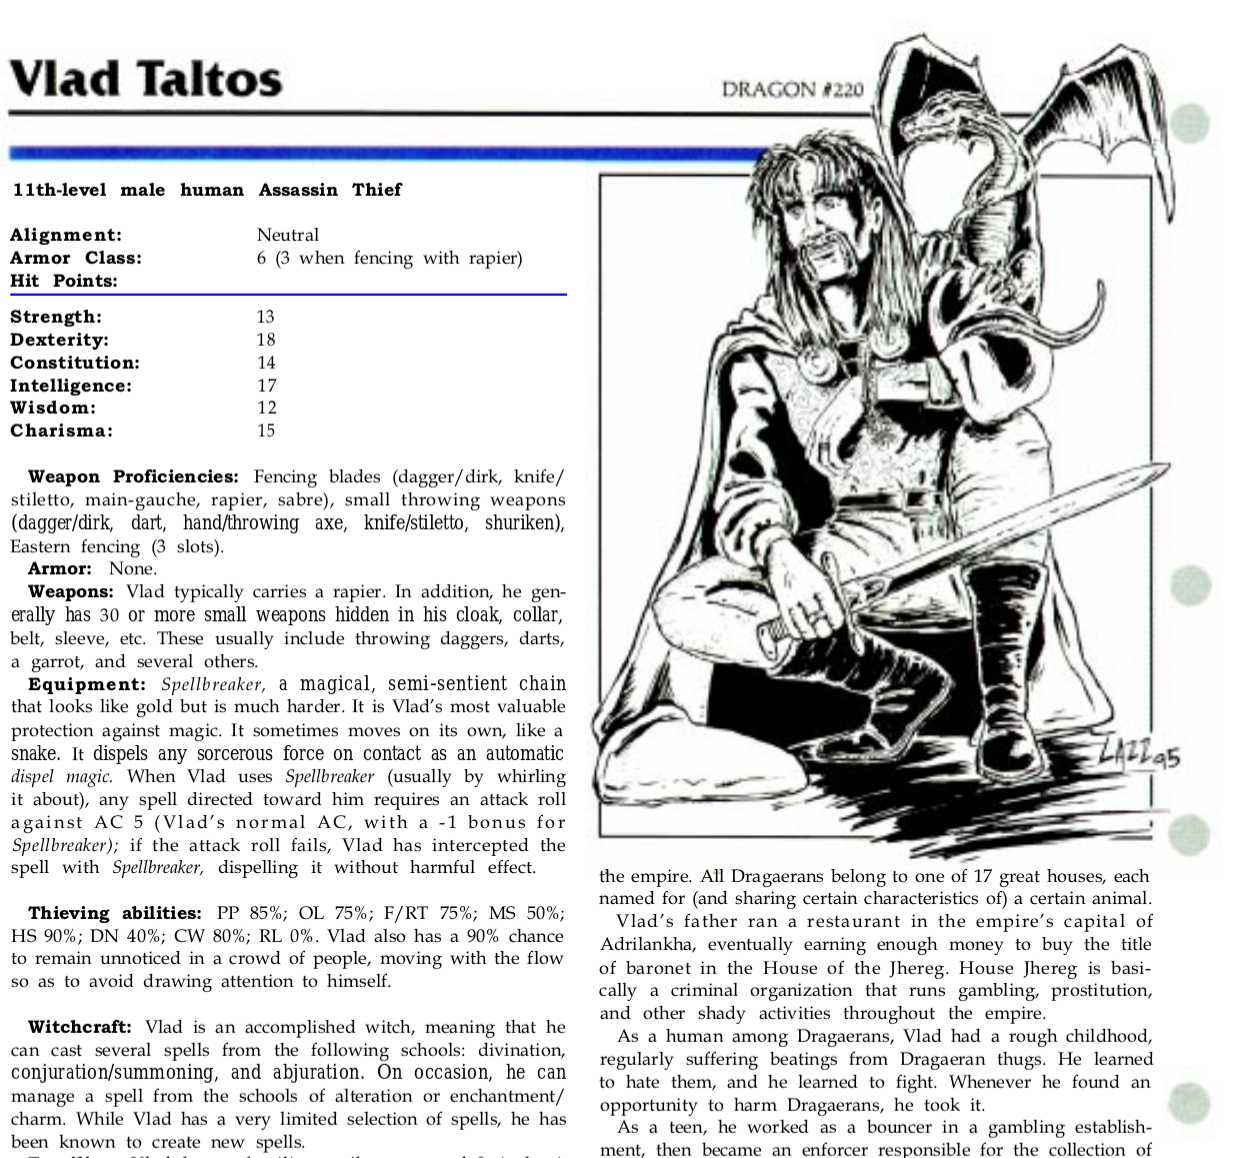 How To: play Vlad Taltos in an RPG